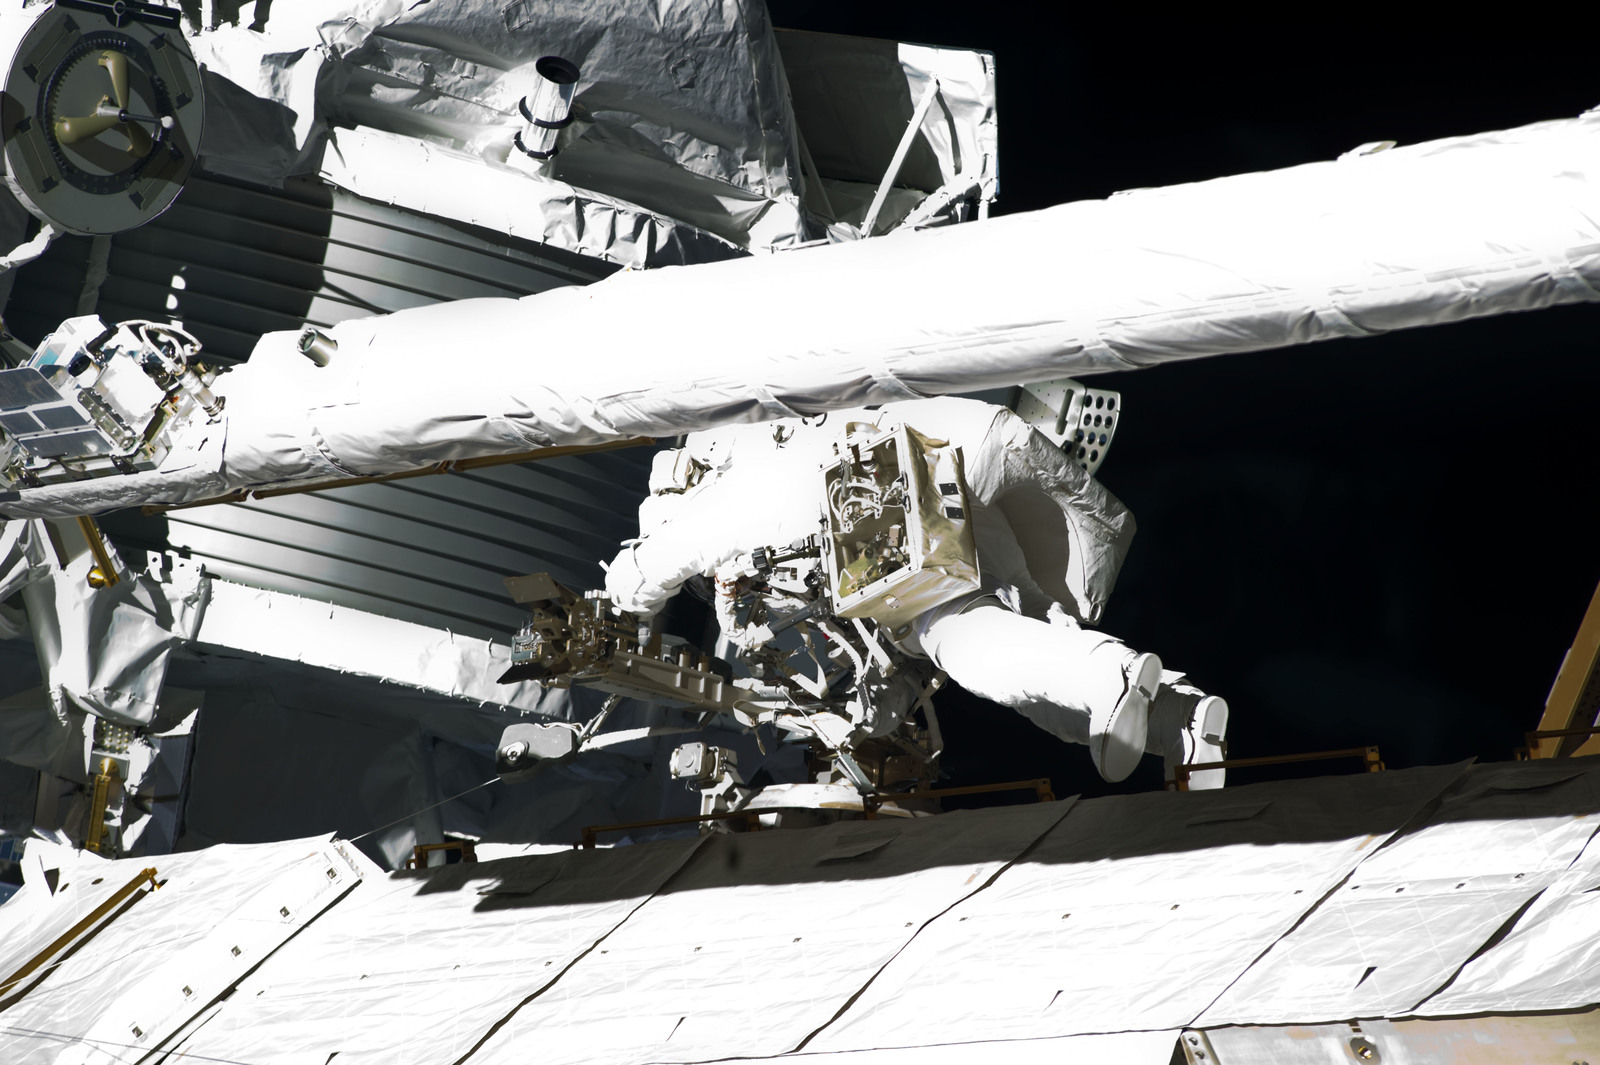 S134E009621 - STS-134 - View of STS-134 MS Fincke during EVA-4